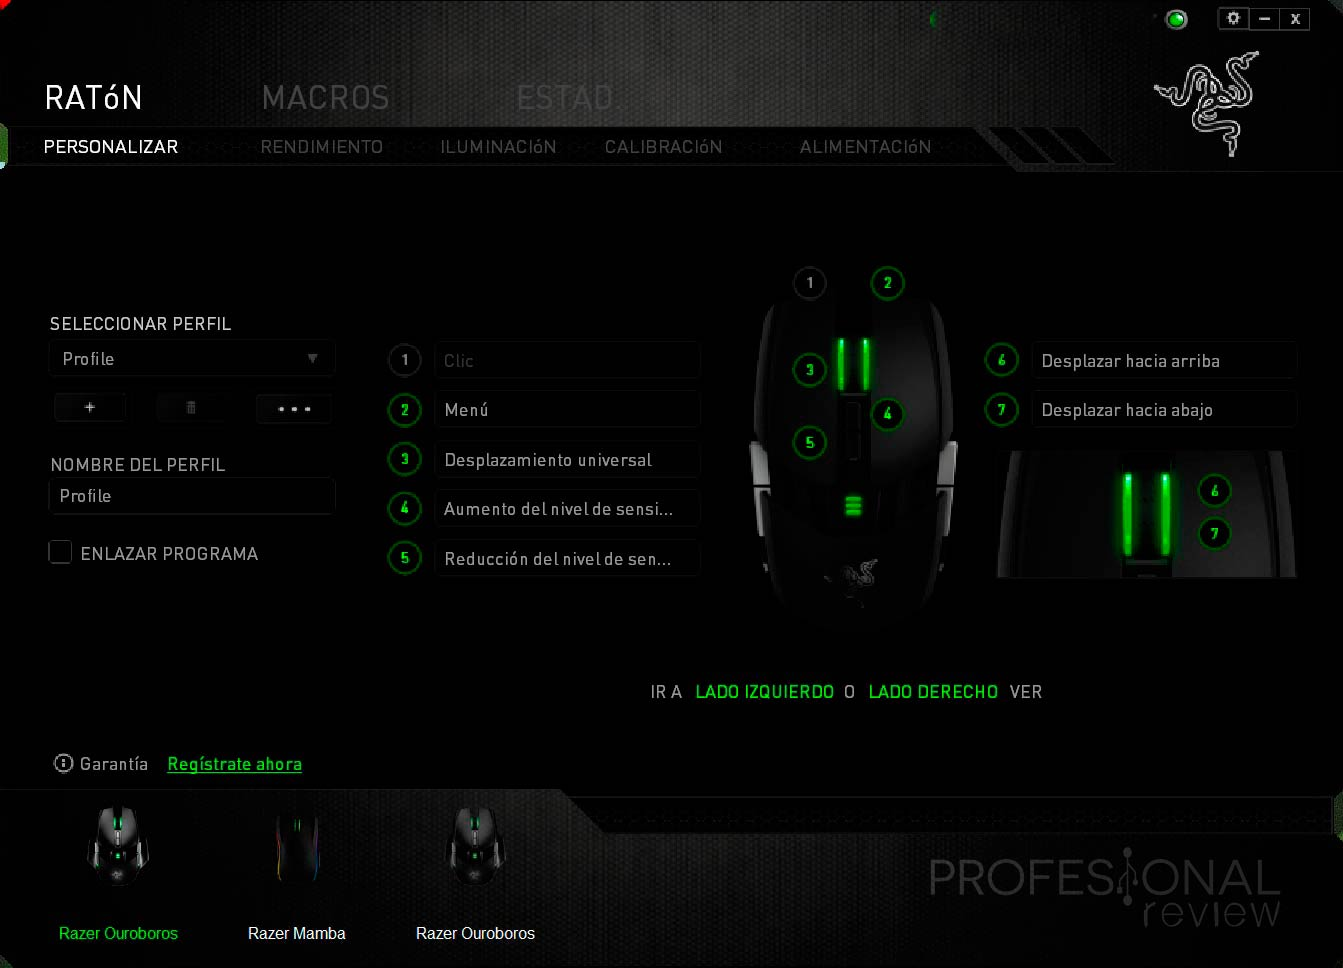 Razer Ouroboros Software